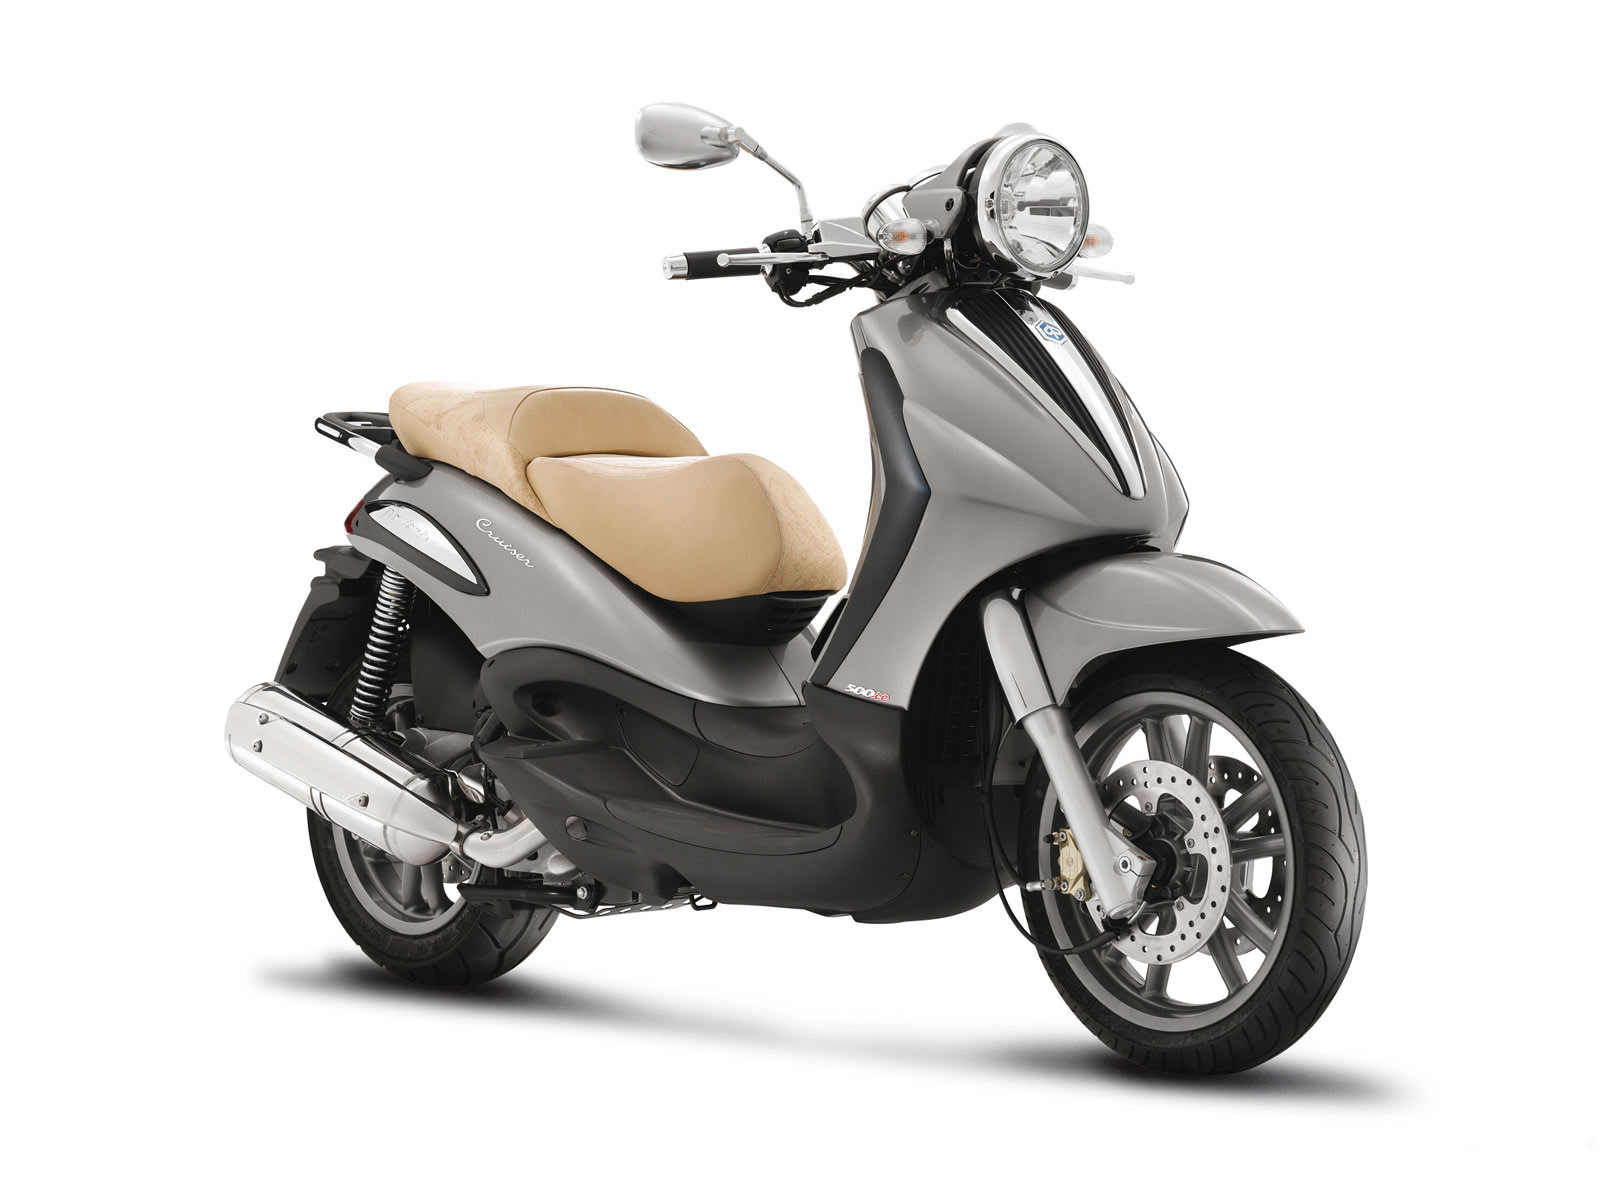 2008 Beverly Cruiser 500 Scooter Pictures Specifications